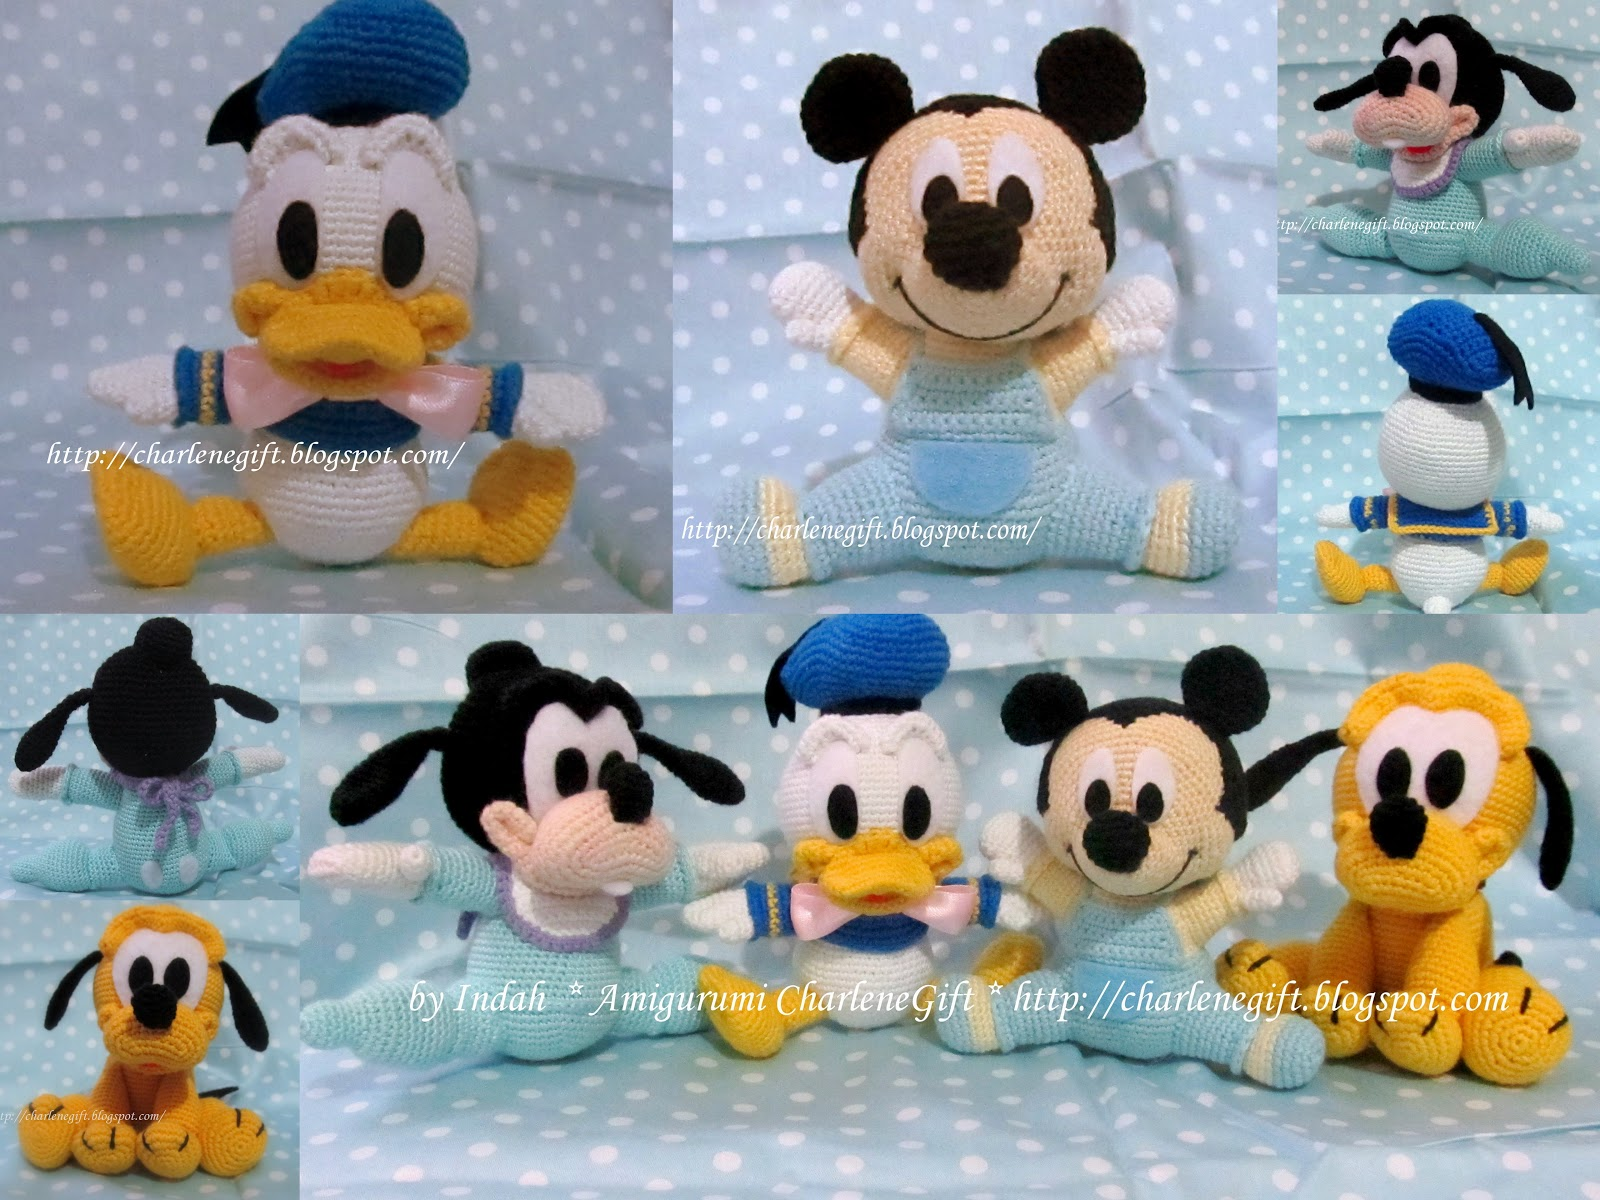 Baby Mickey Amigurumi Pattern : Free Patterns For Baby Mickey Mouse Amigurumi Joy Studio ...